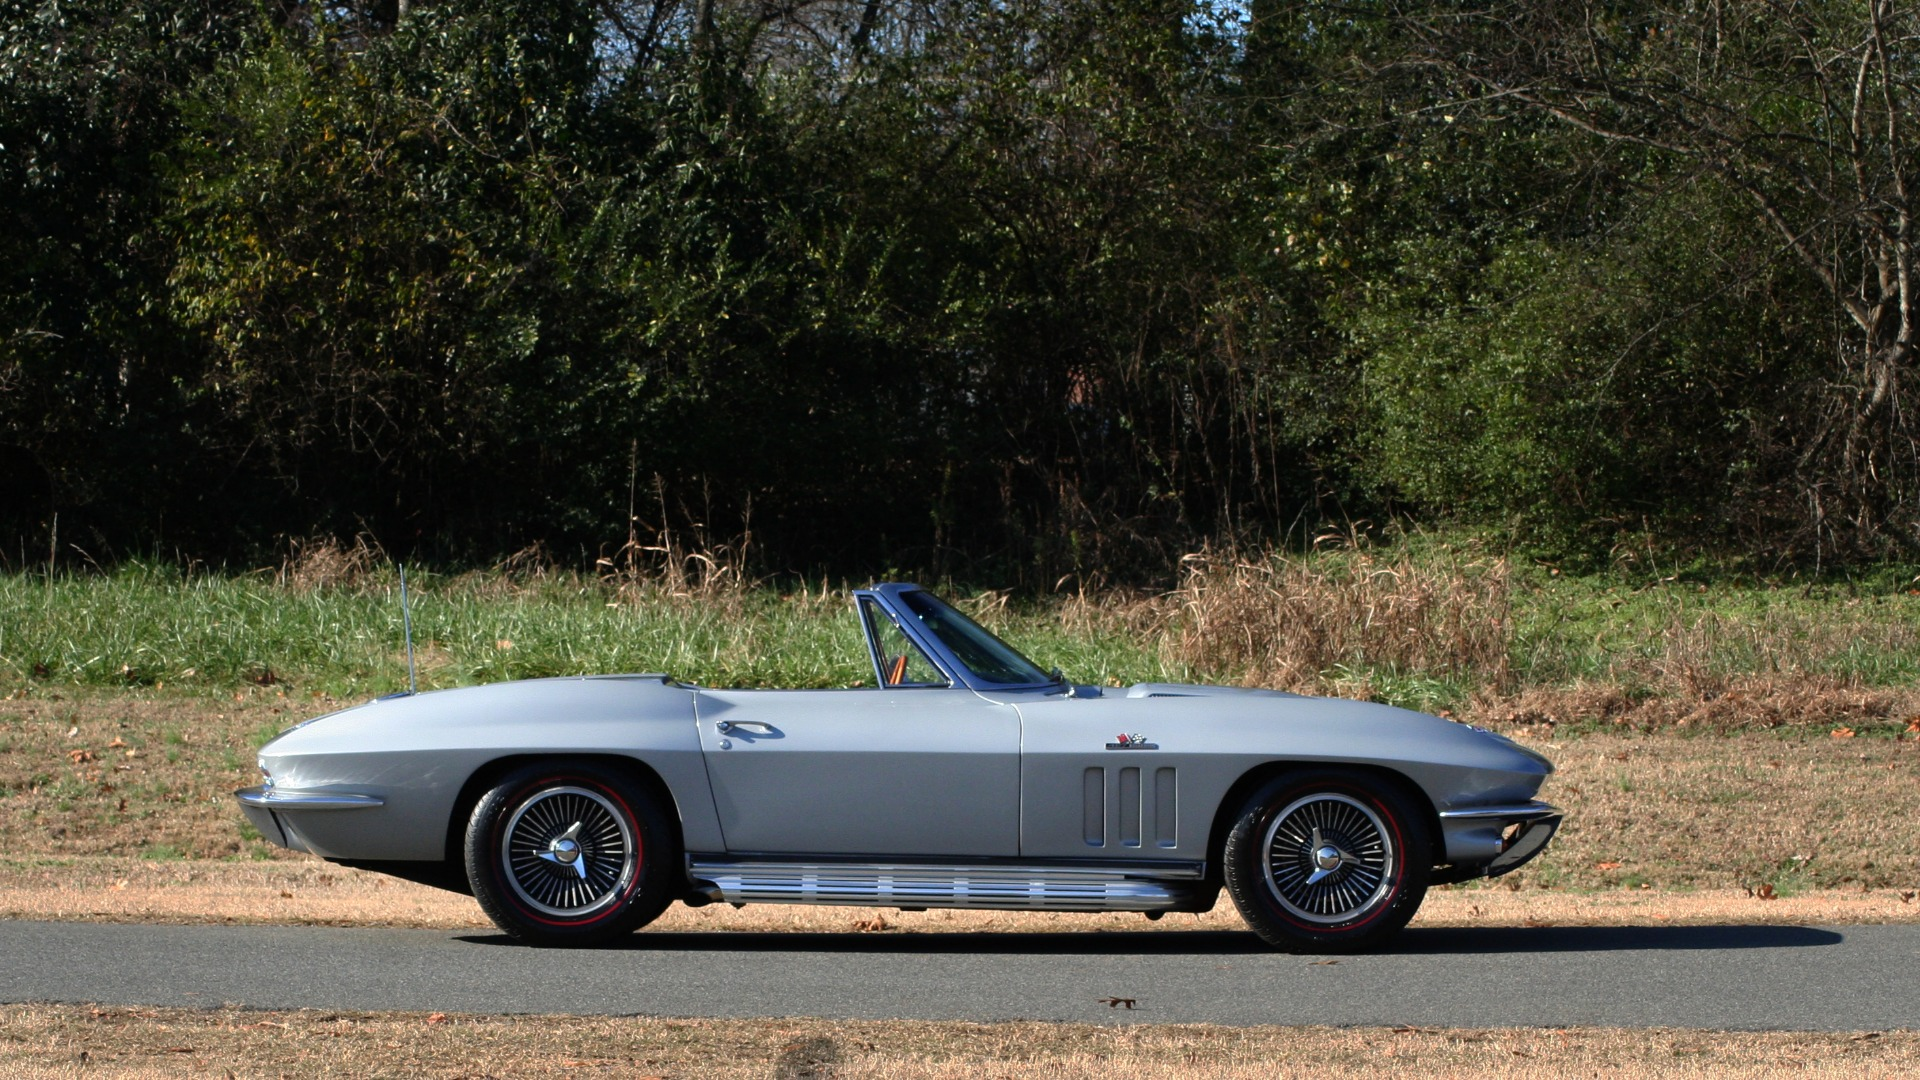 Used 1966 Chevrolet CORVETTE STINGRAY CONVERTIBLE 427 / 4-SPD / NUMBER MATCHING for sale Sold at Formula Imports in Charlotte NC 28227 7